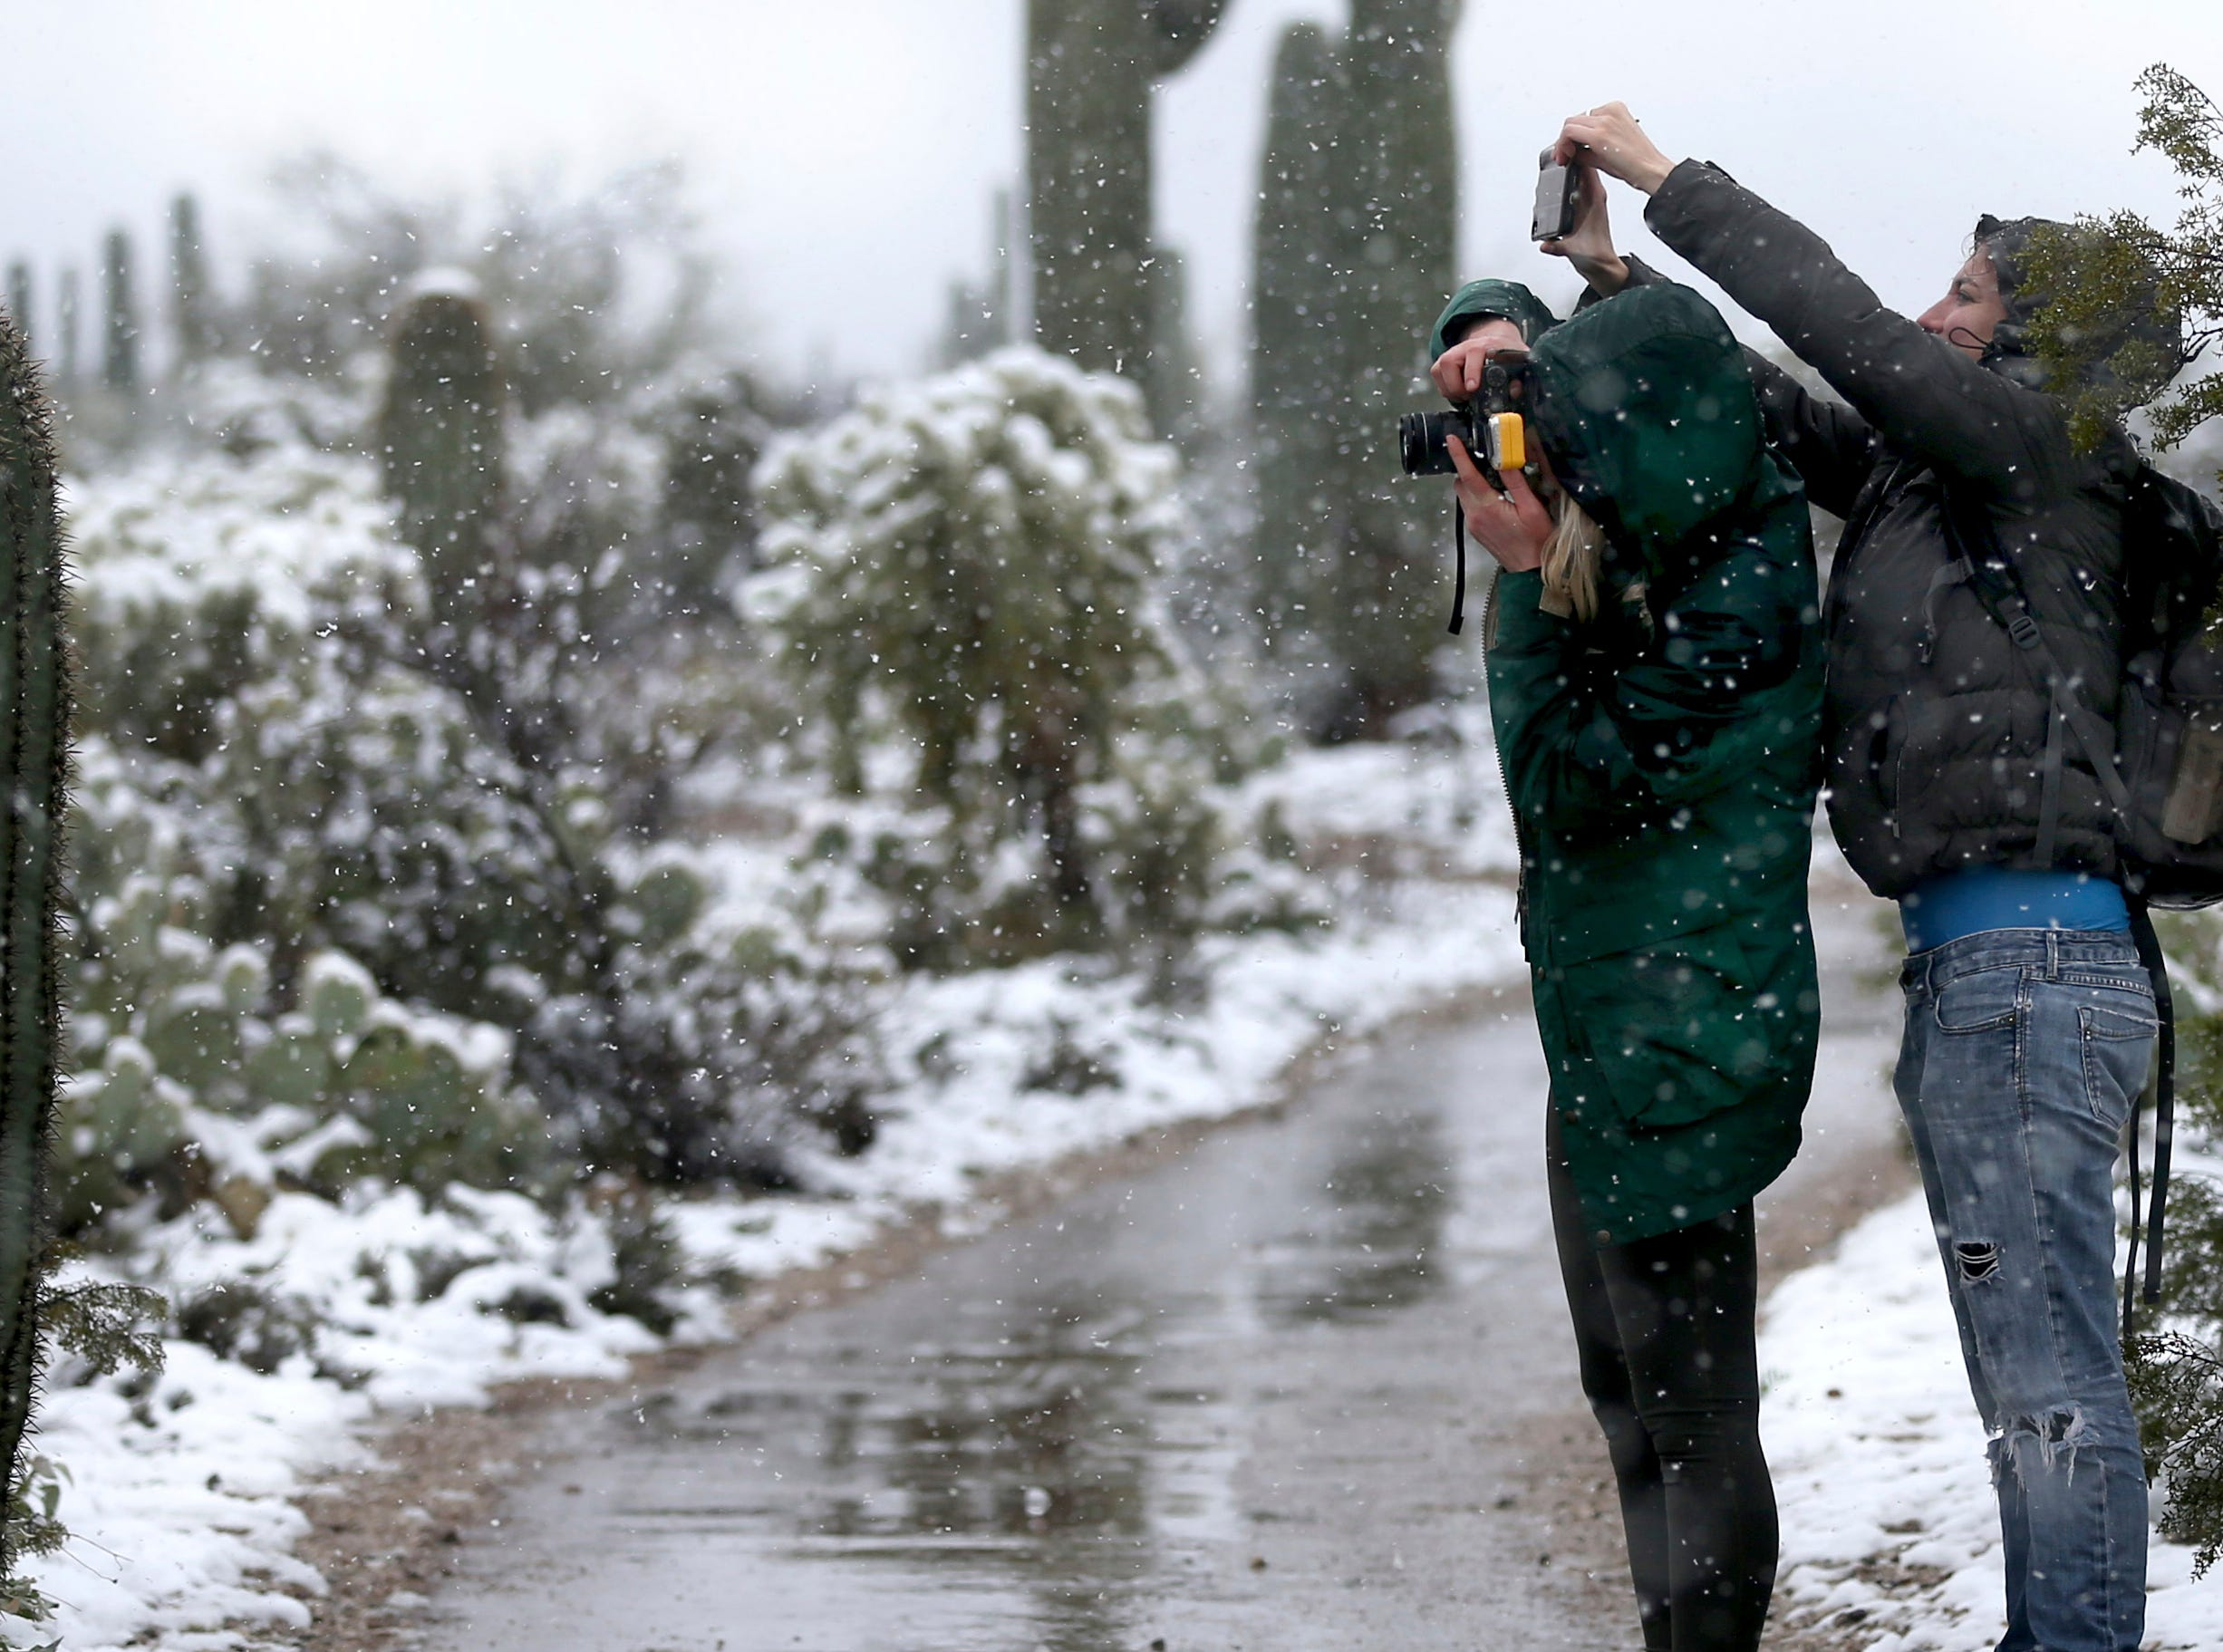 Julia DeConcini, left, and Brittany Smith take photos of the snowman they found and moved to the top of a nearby cactus while taking in the sight of snow over Saguaro National Park East, Friday, Feb. 22, 2019, in Tucson, Ariz. A winter storm dumped record-breaking amounts of snow in Arizona and forced the closure Friday of roads, schools and government offices across the Southwest.